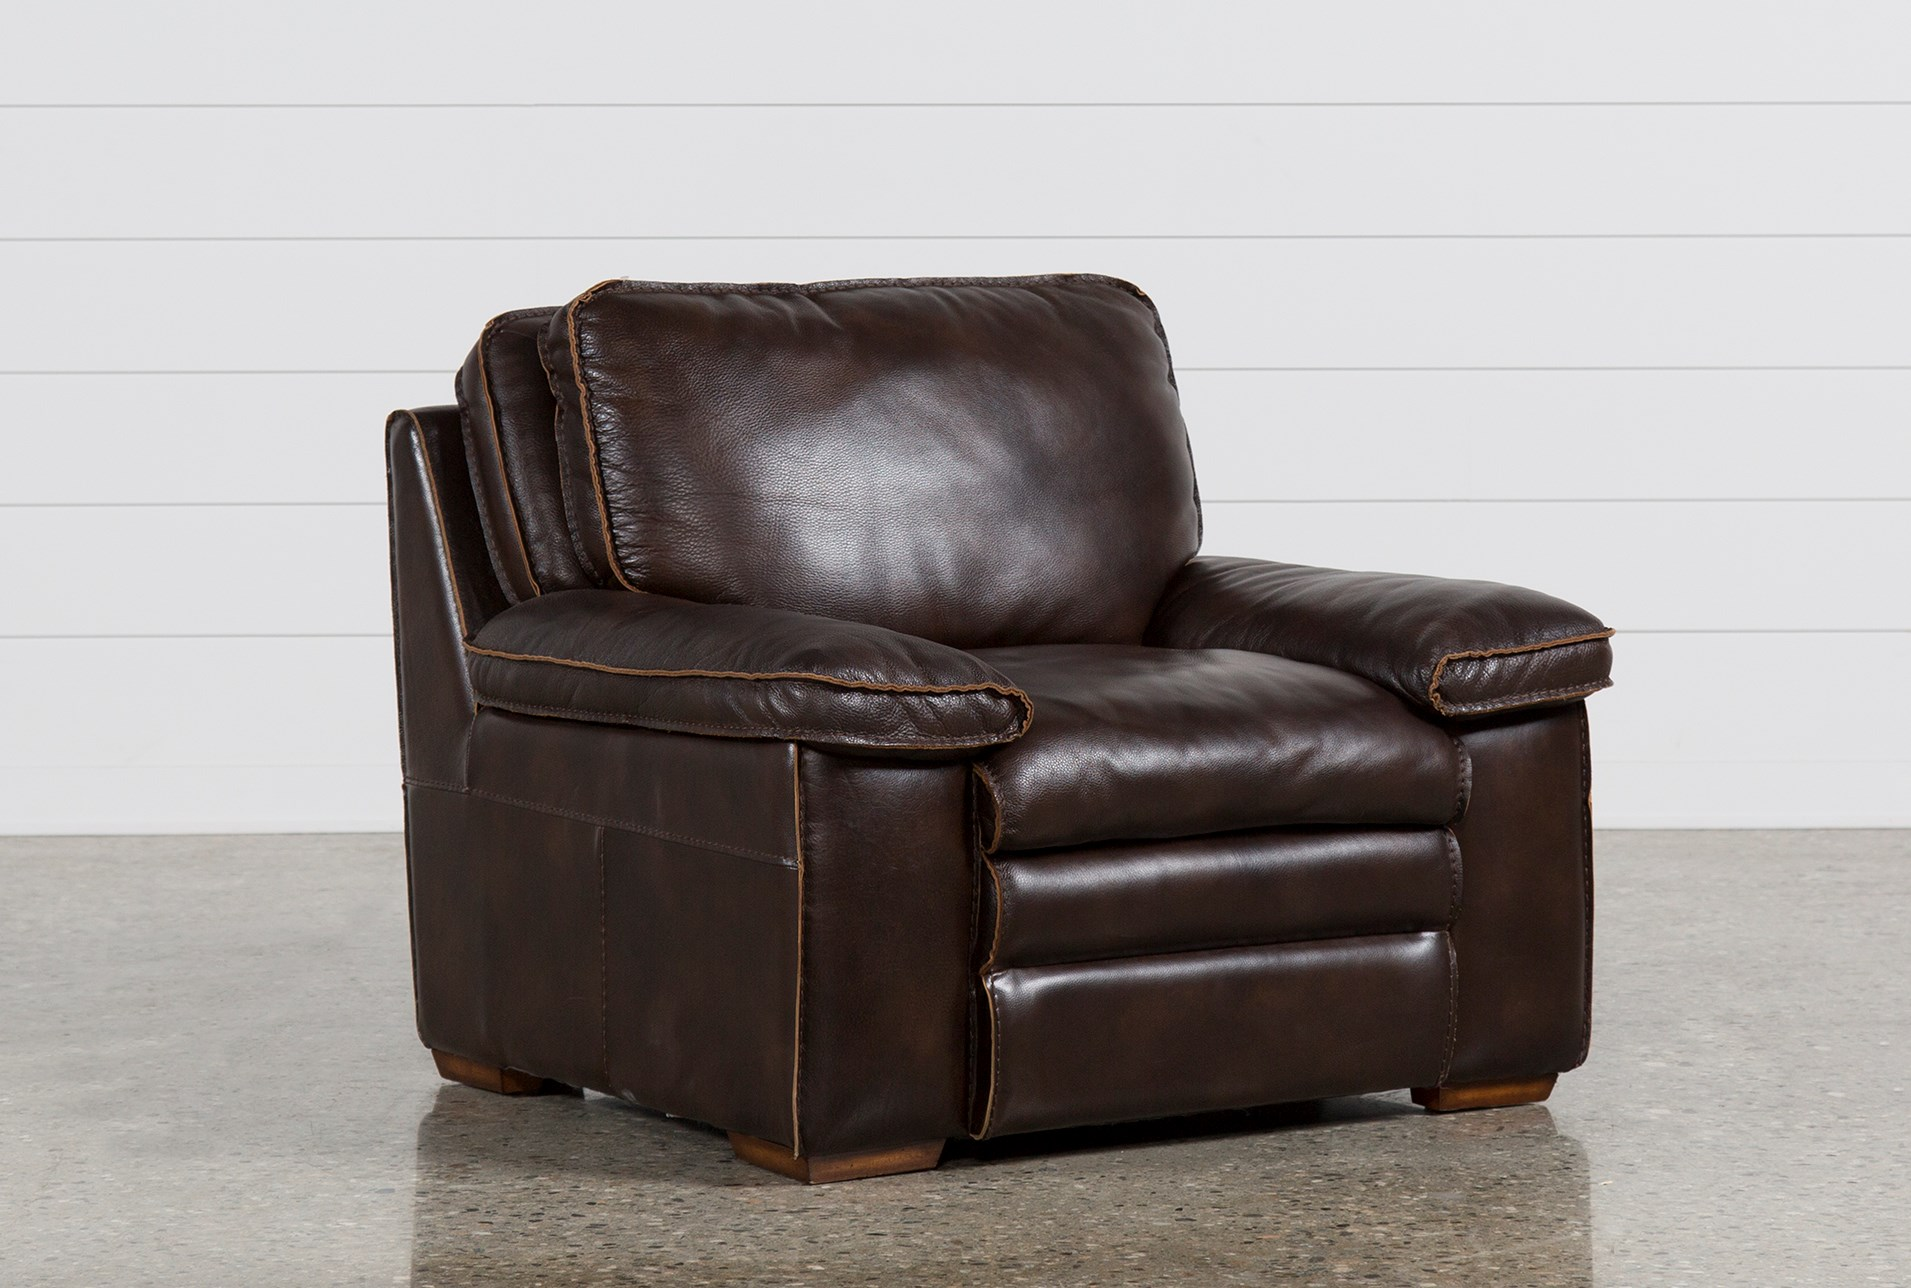 chairs leather recliner drink chair sofa reclining cinema armchair itm holders oscar w